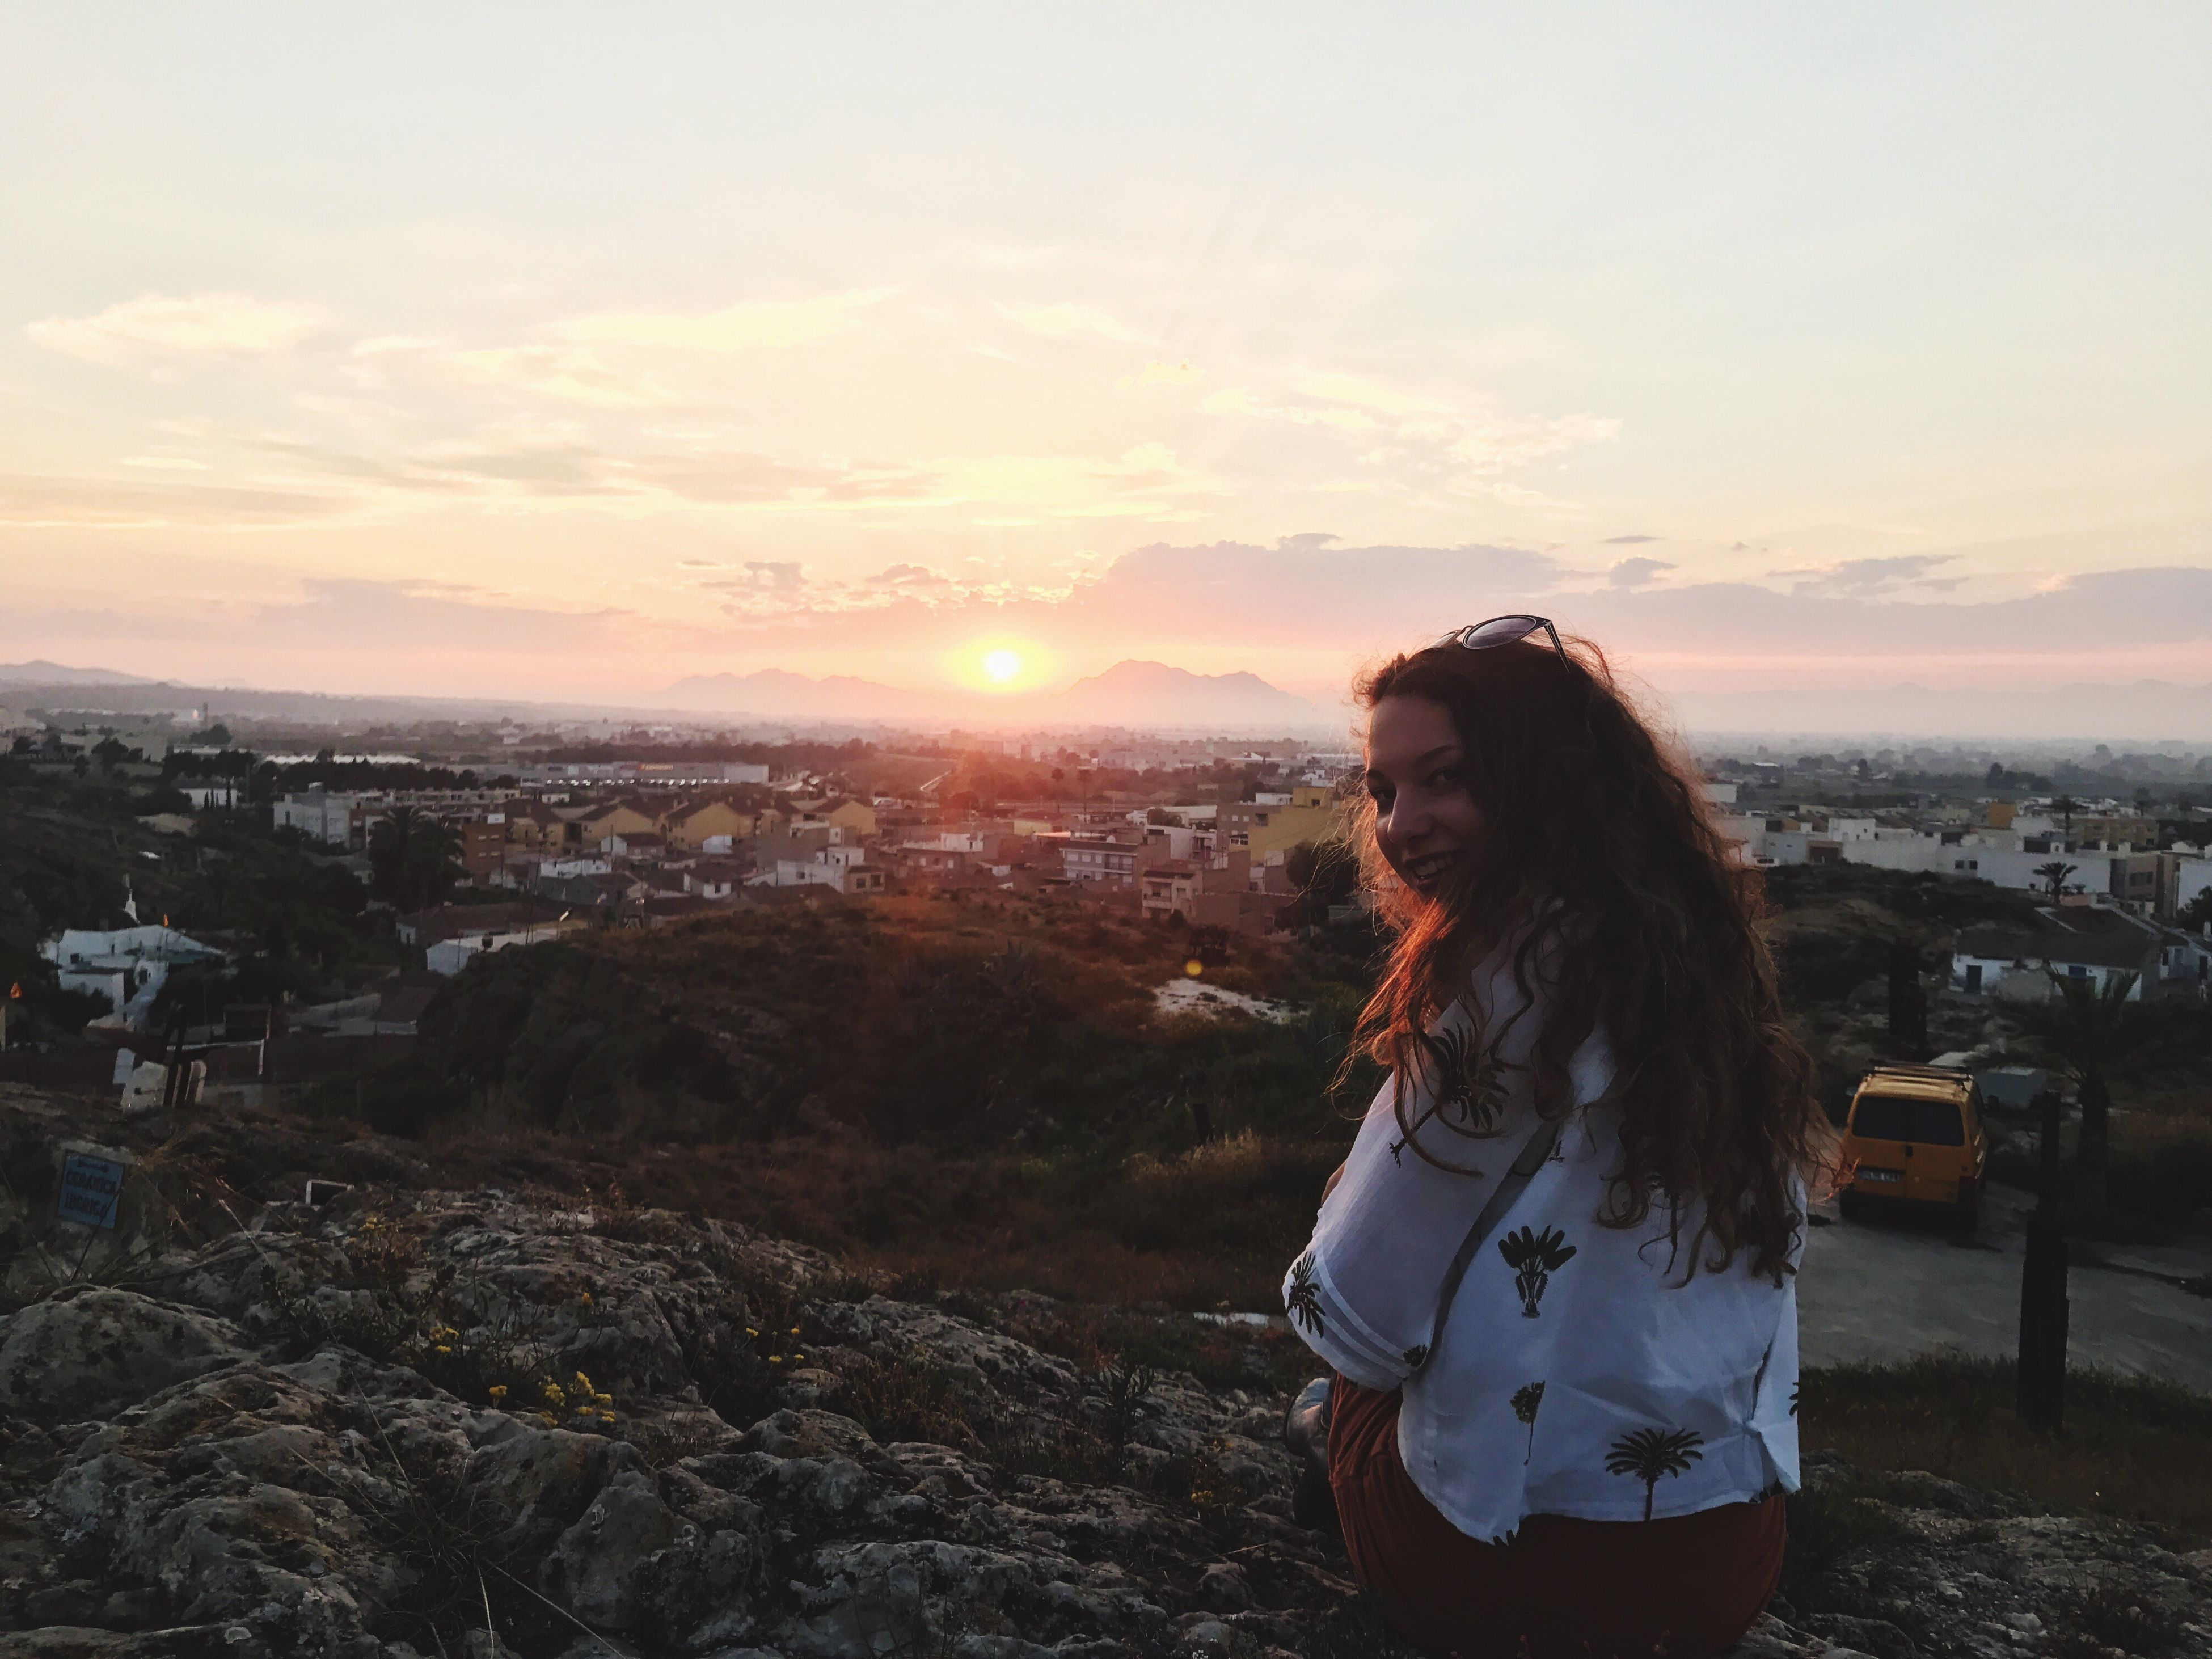 sky, sunset, lifestyles, cityscape, leisure activity, city, beauty in nature, real people, happiness, nature, one person, outdoors, scenics, young adult, beautiful woman, architecture, people, young women, only women, adults only, adult, day